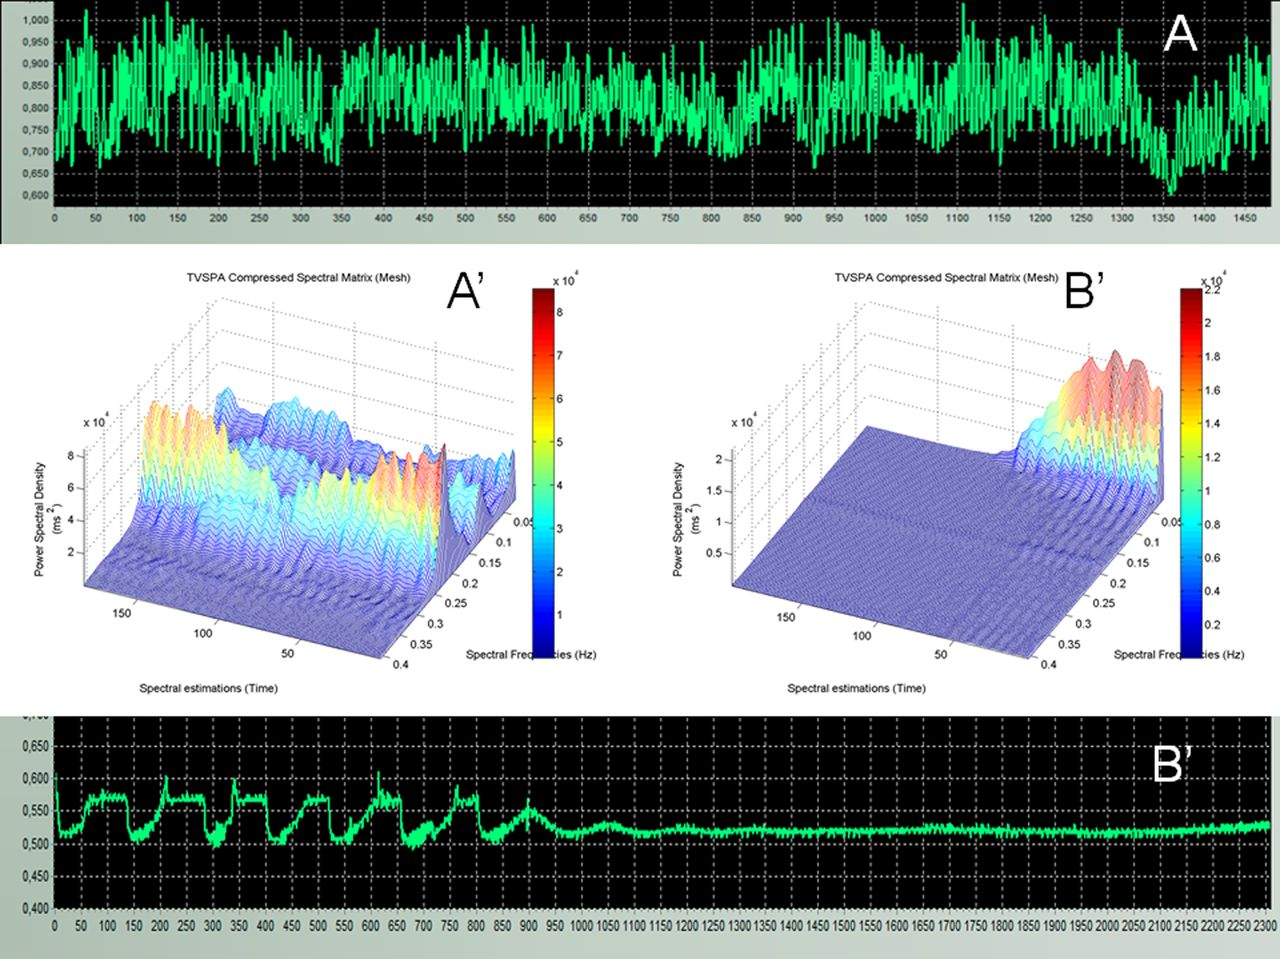 Residual vasomotor activity assessed by heart rate variability in a